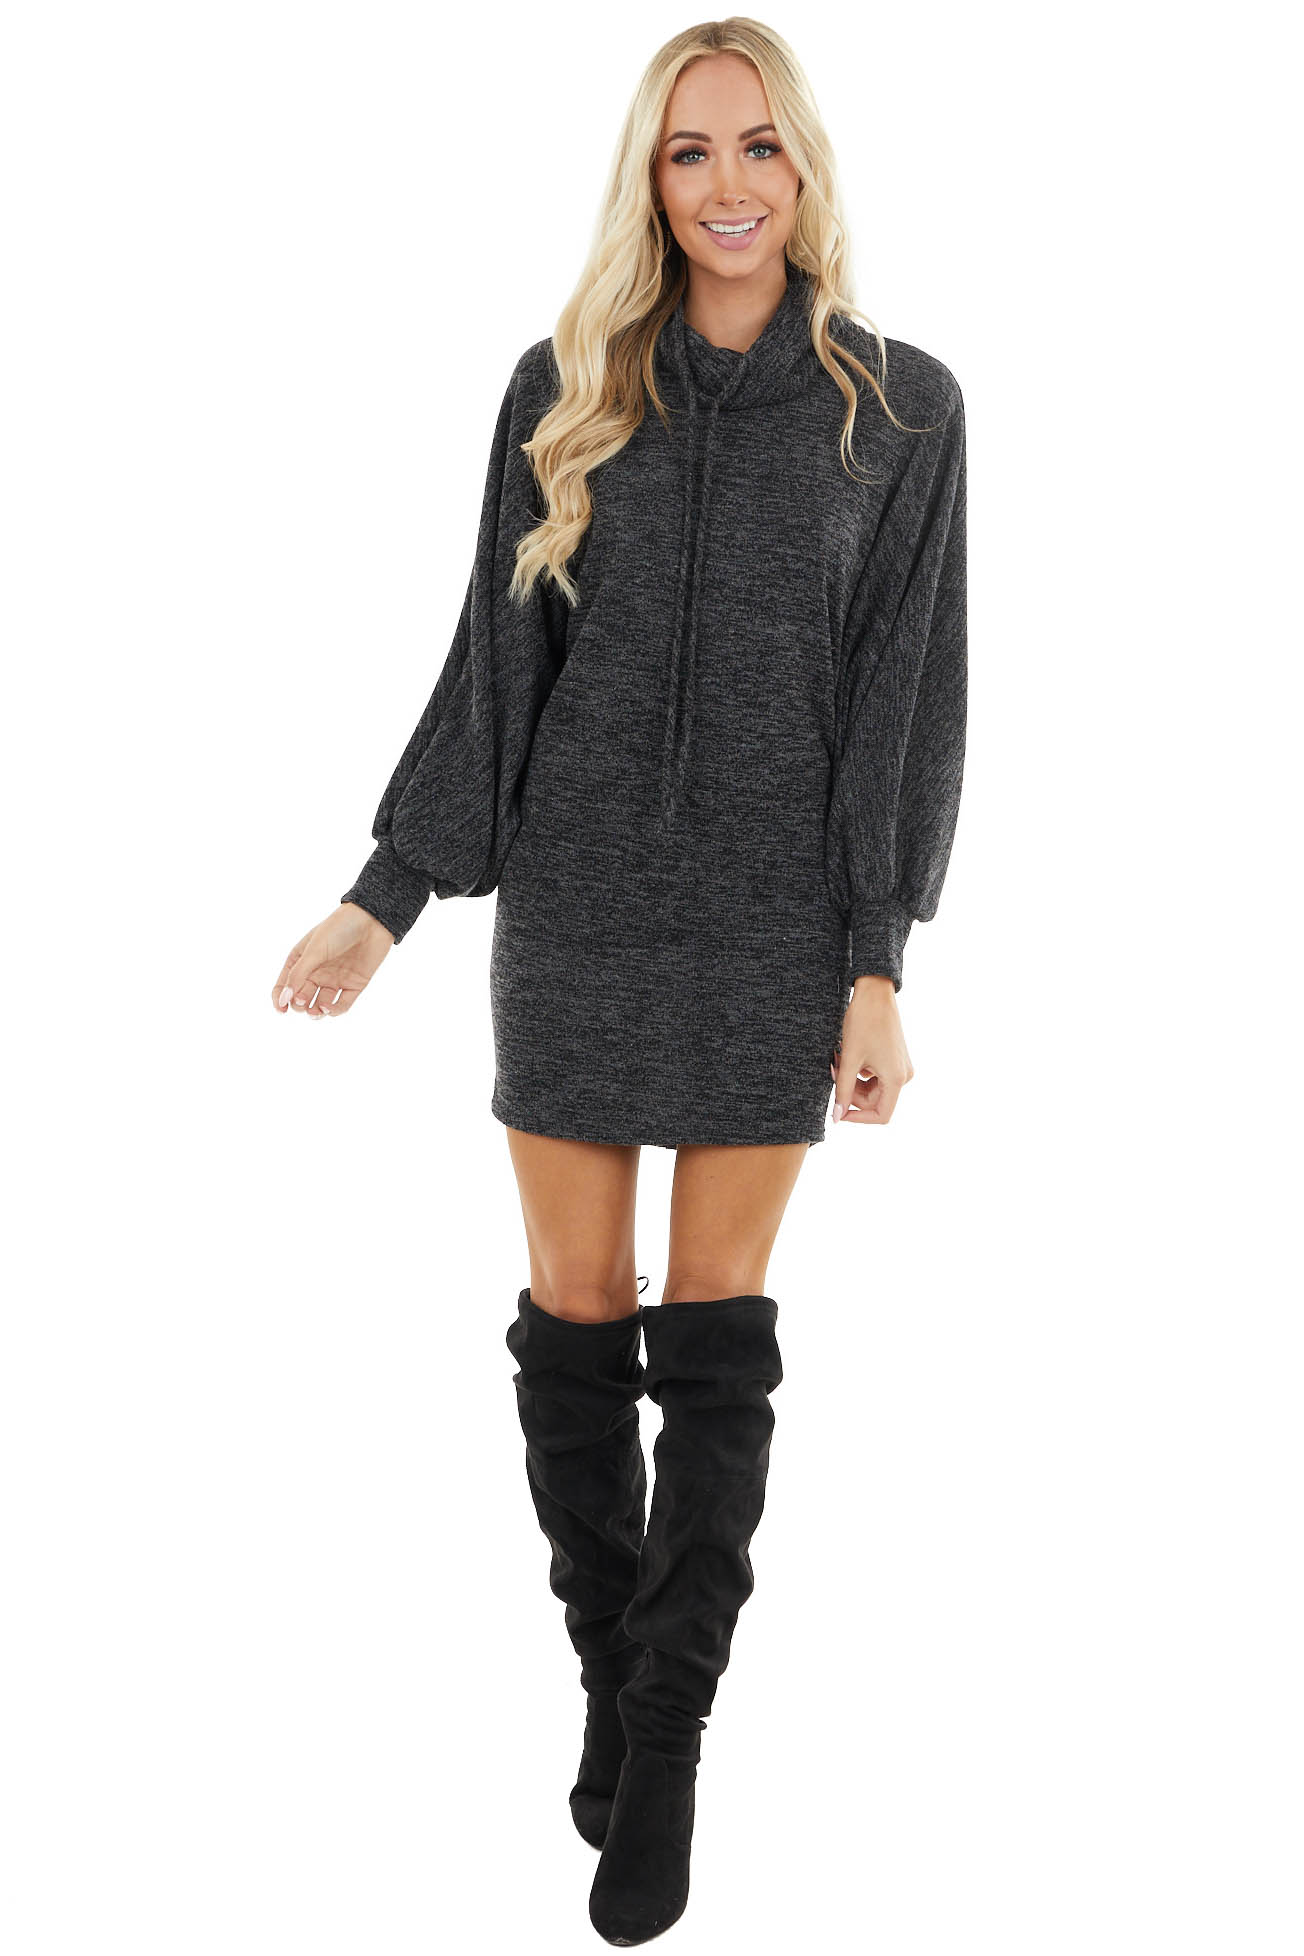 Black Two Tone Long Dolman Sleeve Dress with Cowl Neckline